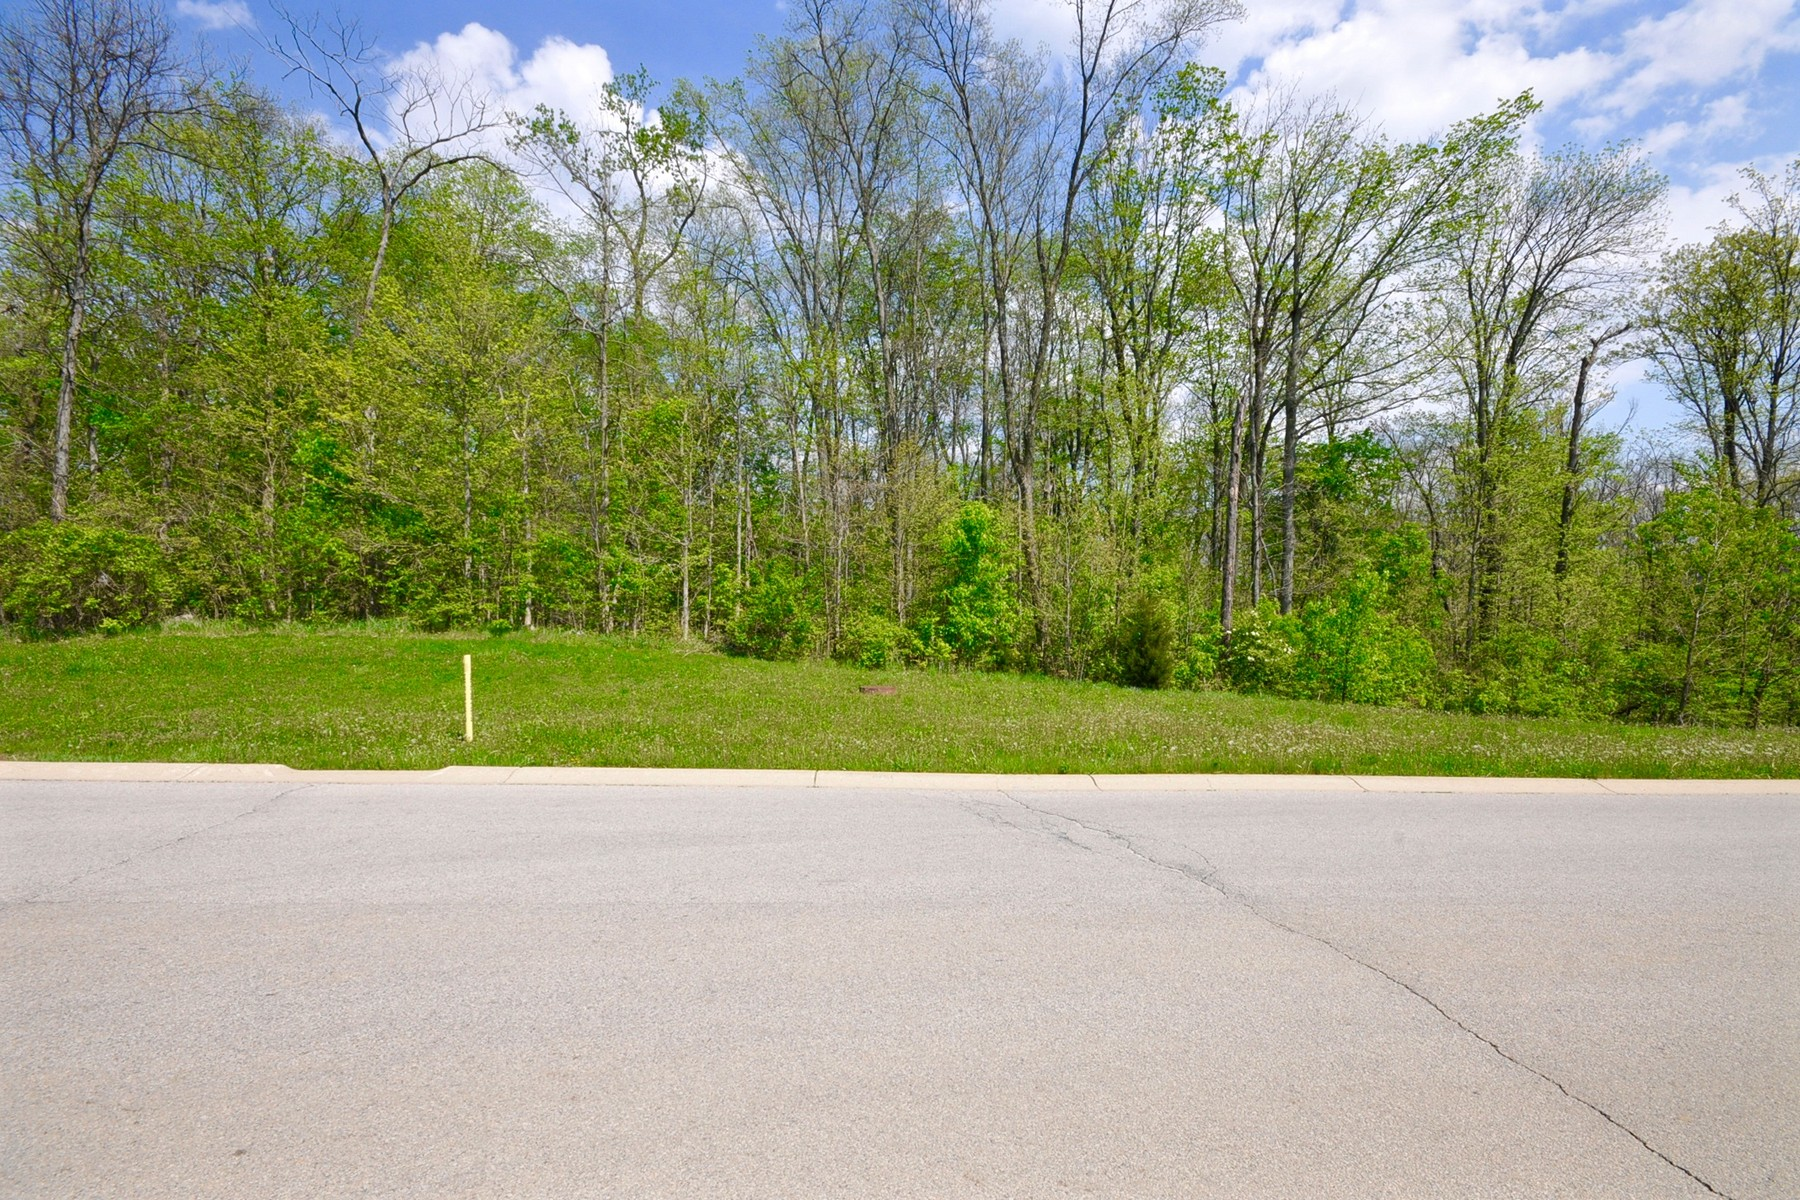 Terreno por un Venta en Beautiful 3.73 Acre Lot 11559 Willow Springs Drive Zionsville, Indiana 46077 Estados Unidos